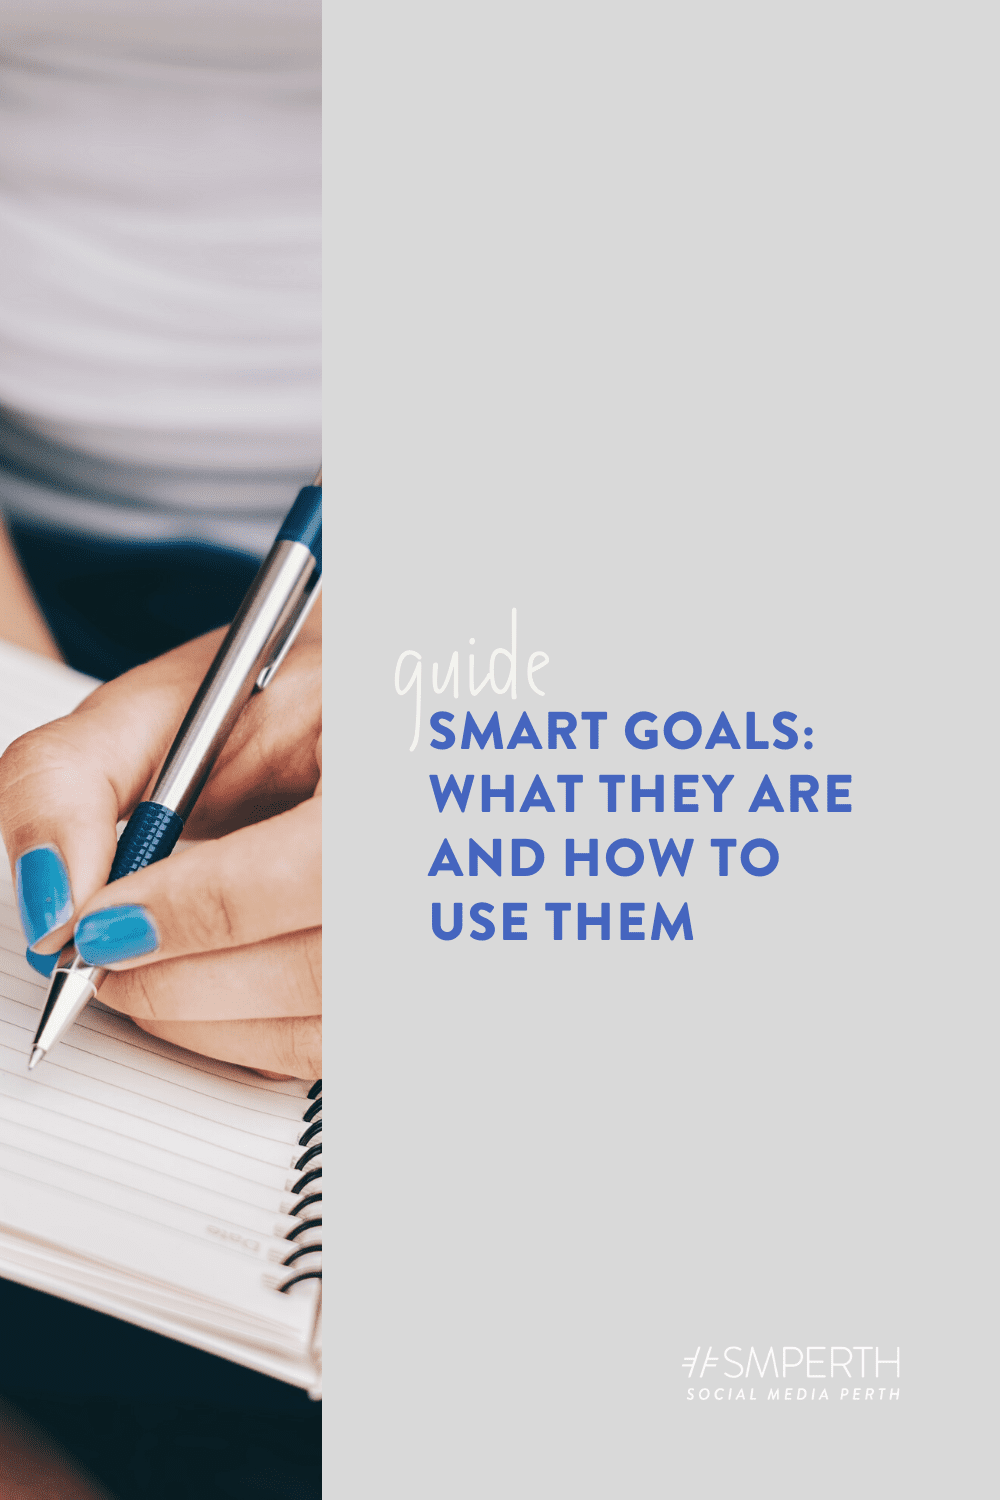 SMART goals: what they are and how to use them